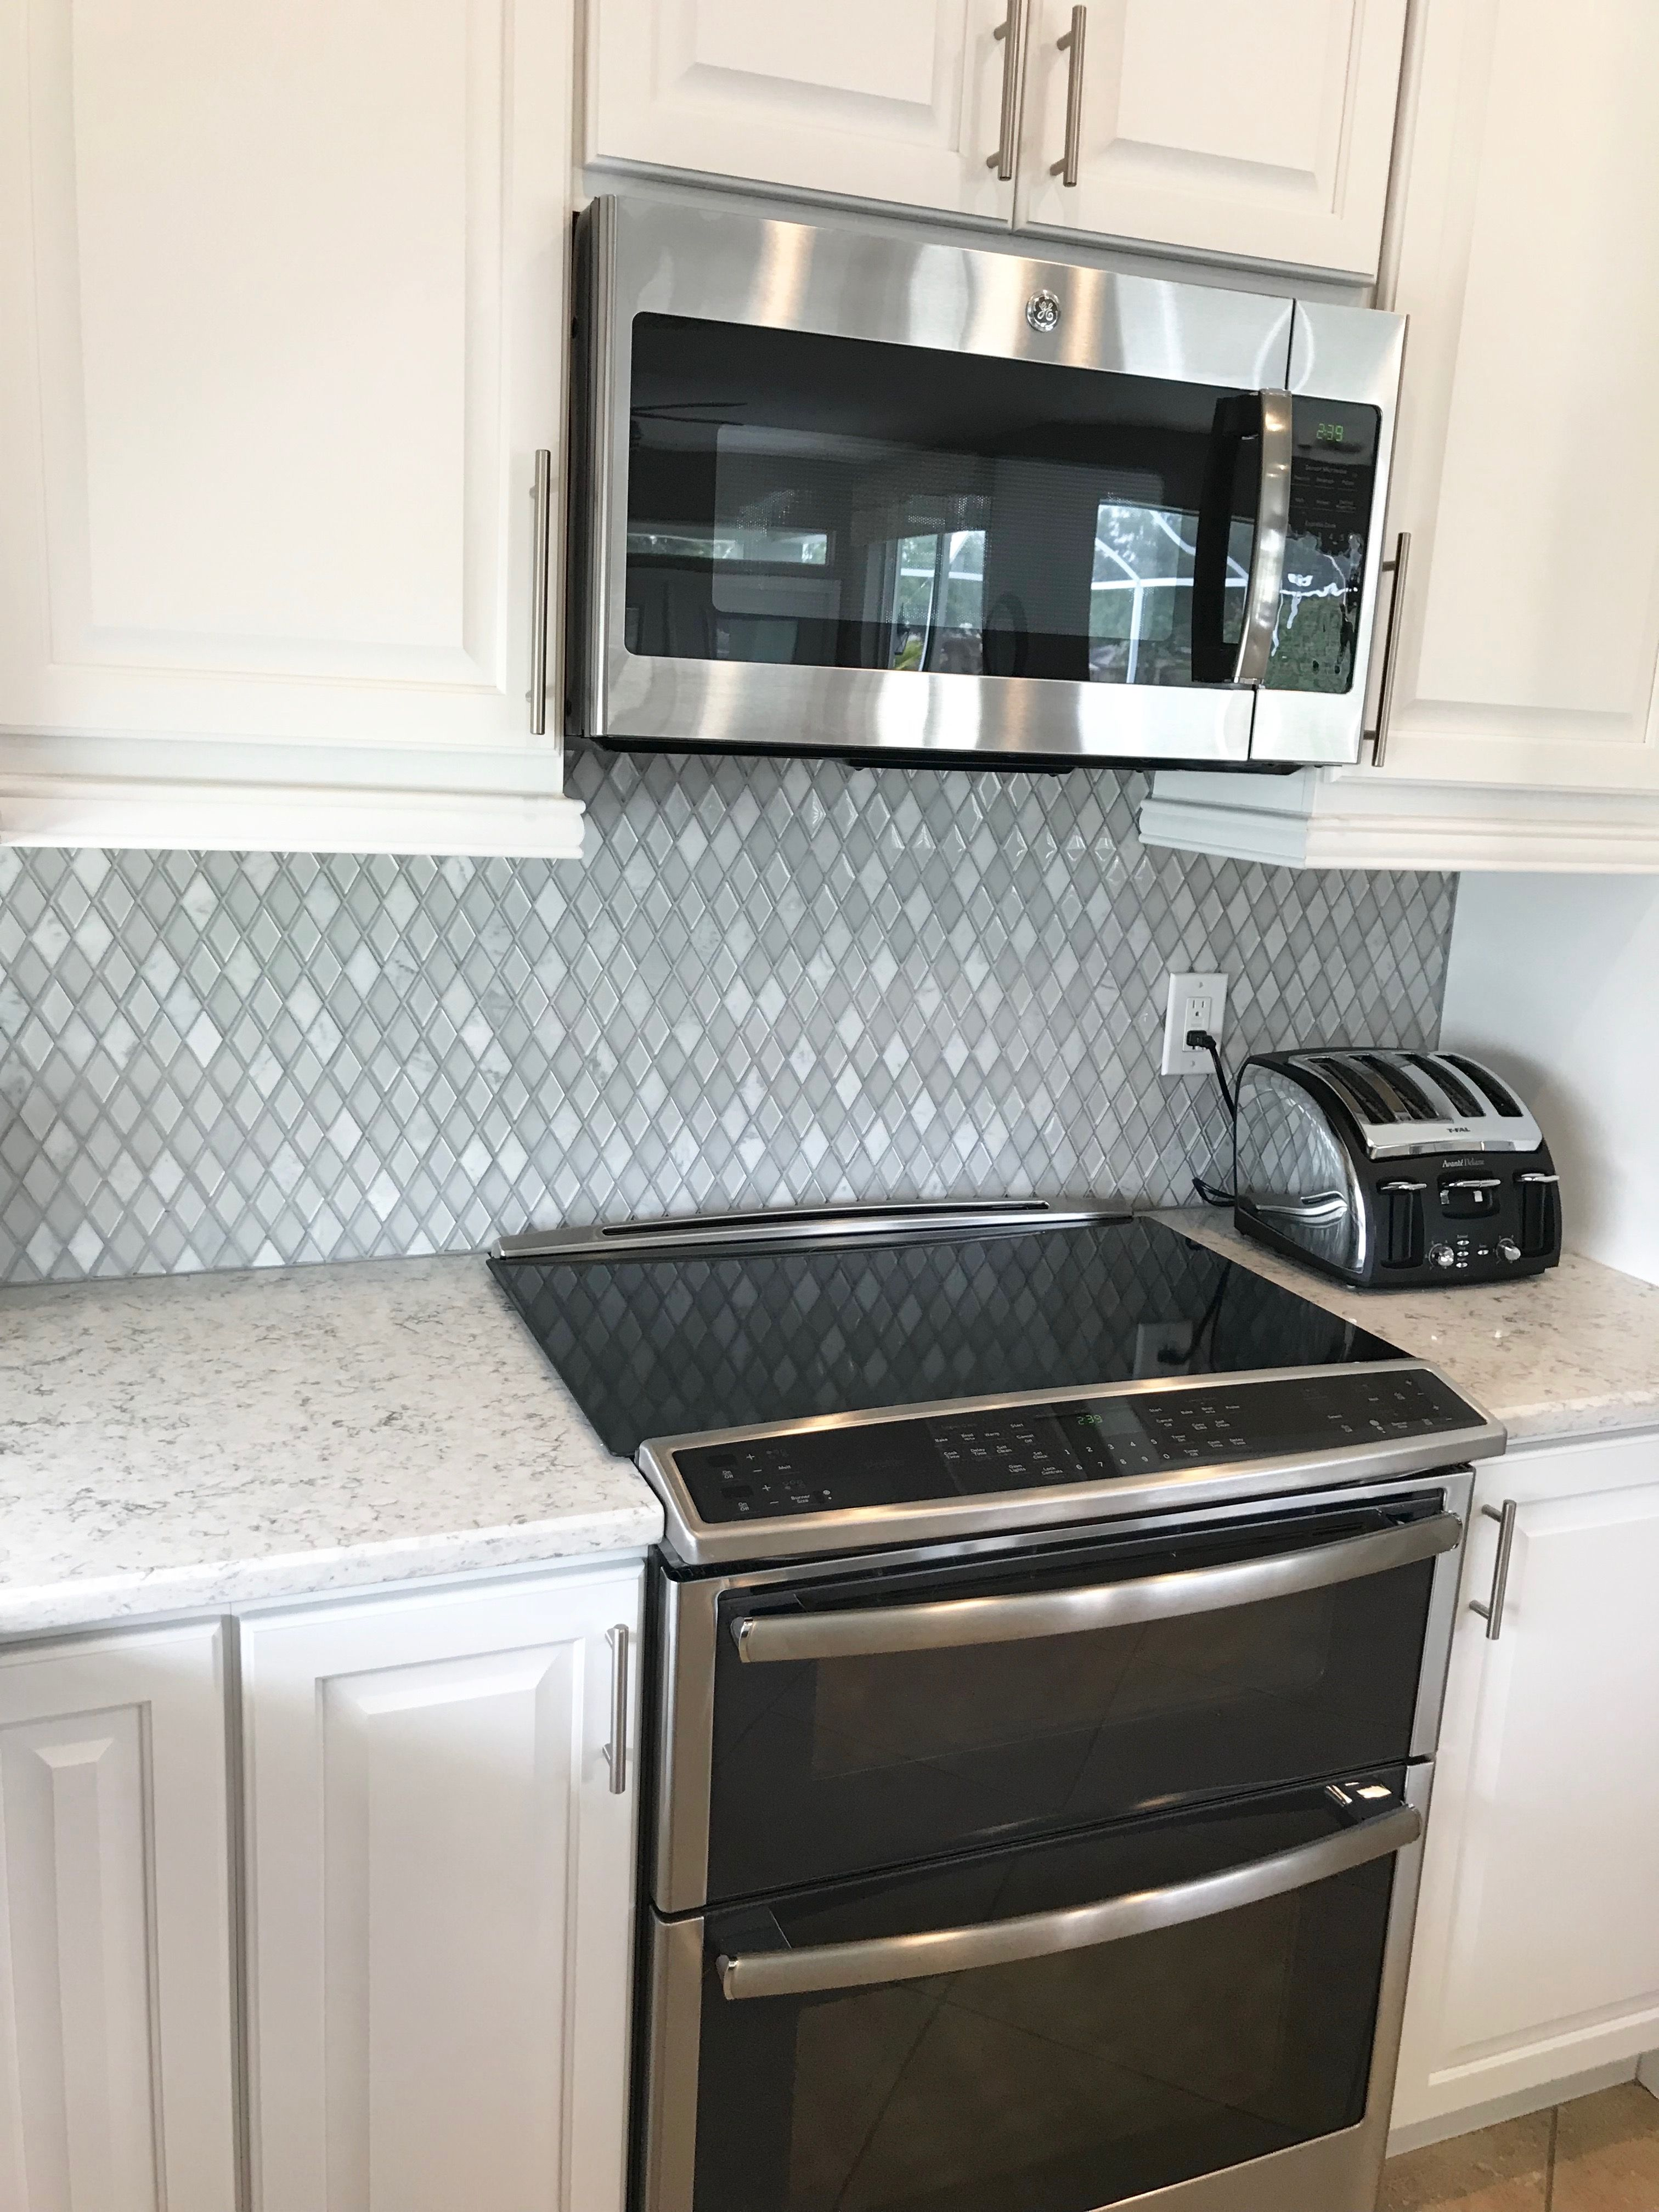 White Quartz Counter And Cabinets With Diamond Tile Marble Backsplash